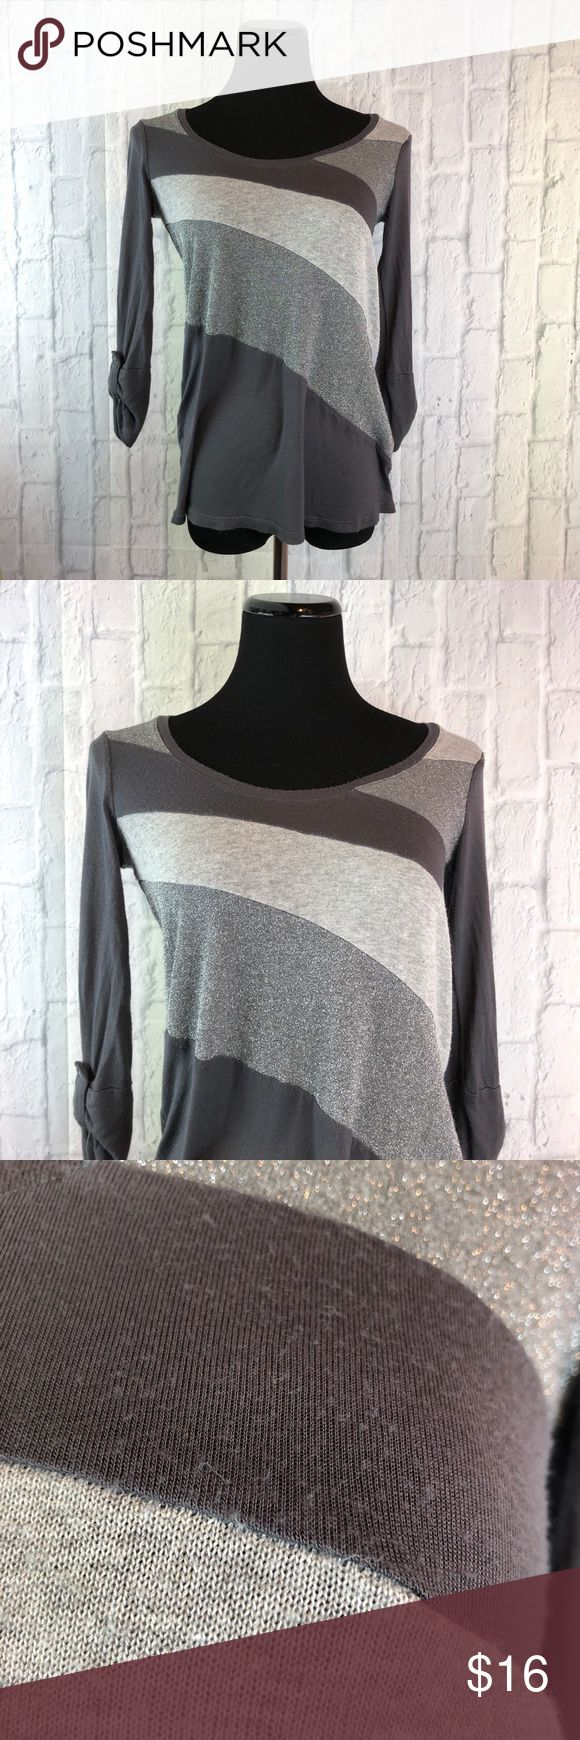 "✨Ella Moss Sparkly Blouse✨ Item #: 48  YOU ARE BUYING: Ella Moss Top  STYLE: 3/4 Sleeve Blouse   COLOR: Gray/silver   SIZE: Small  CONDITION: pre-loved. Small bleach stain on front. Washed and worn several times.    MEASUREMENTS ⤵️   PIT TO PIT: 17""  LENGTH: 23""  PIT TO SLEEVE: 14.5"" Ella Moss Tops Blouses"